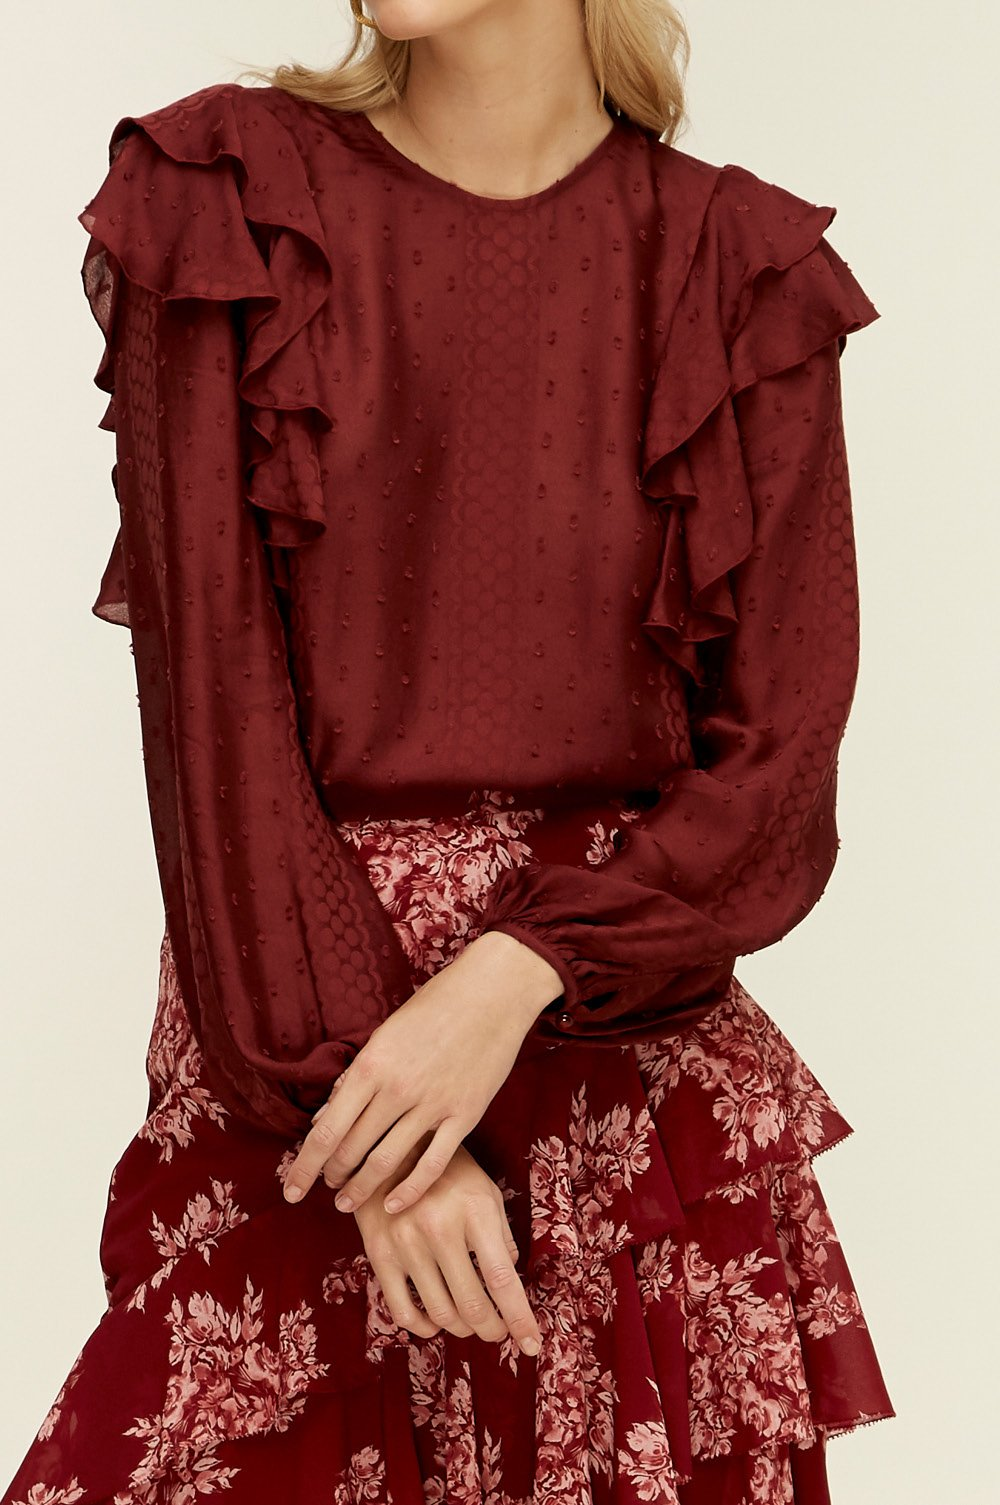 Lover Juliette Top in Burgundy